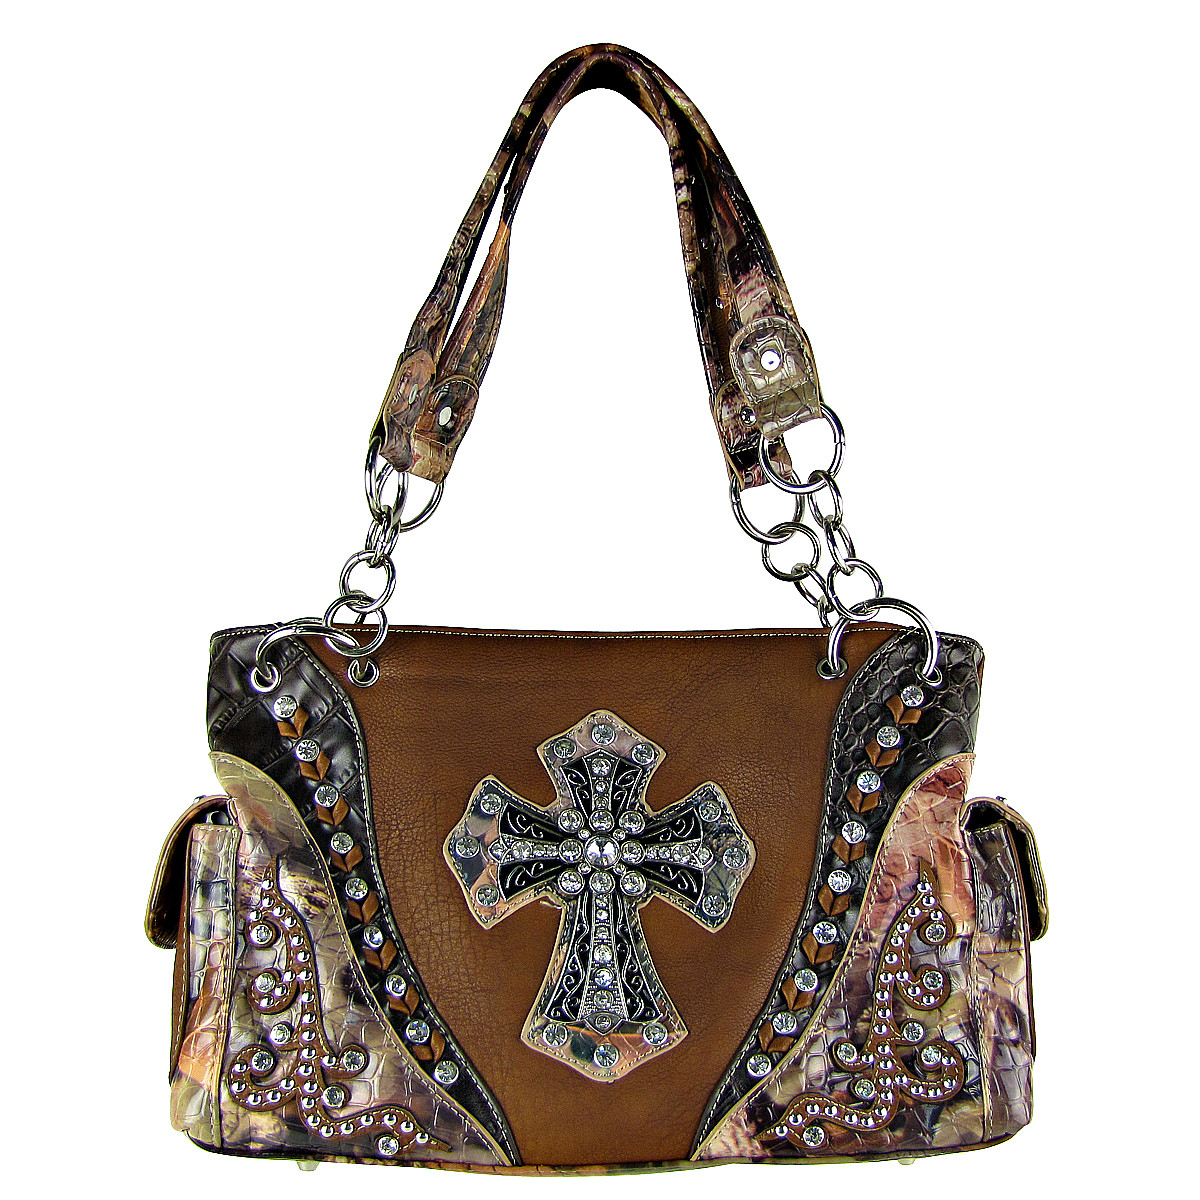 BROWN WESTERN STUDDED MOSSY CAMO CROSS LOOK SHOULDER HANDBAG HB1-HC0037BRN